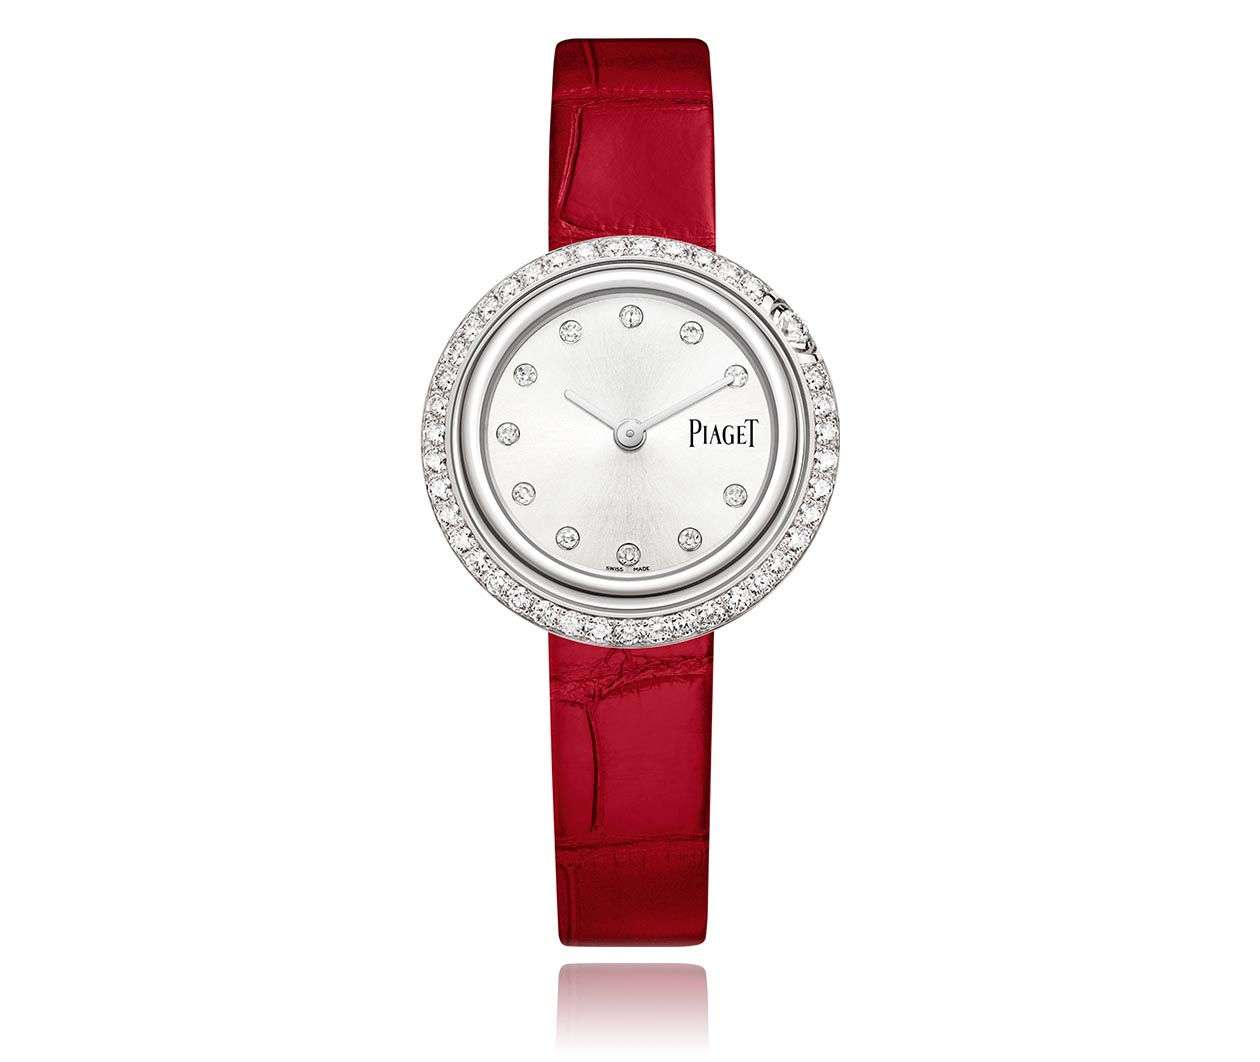 Piaget Possession watch G0A43084 Carousel 1 FINAL